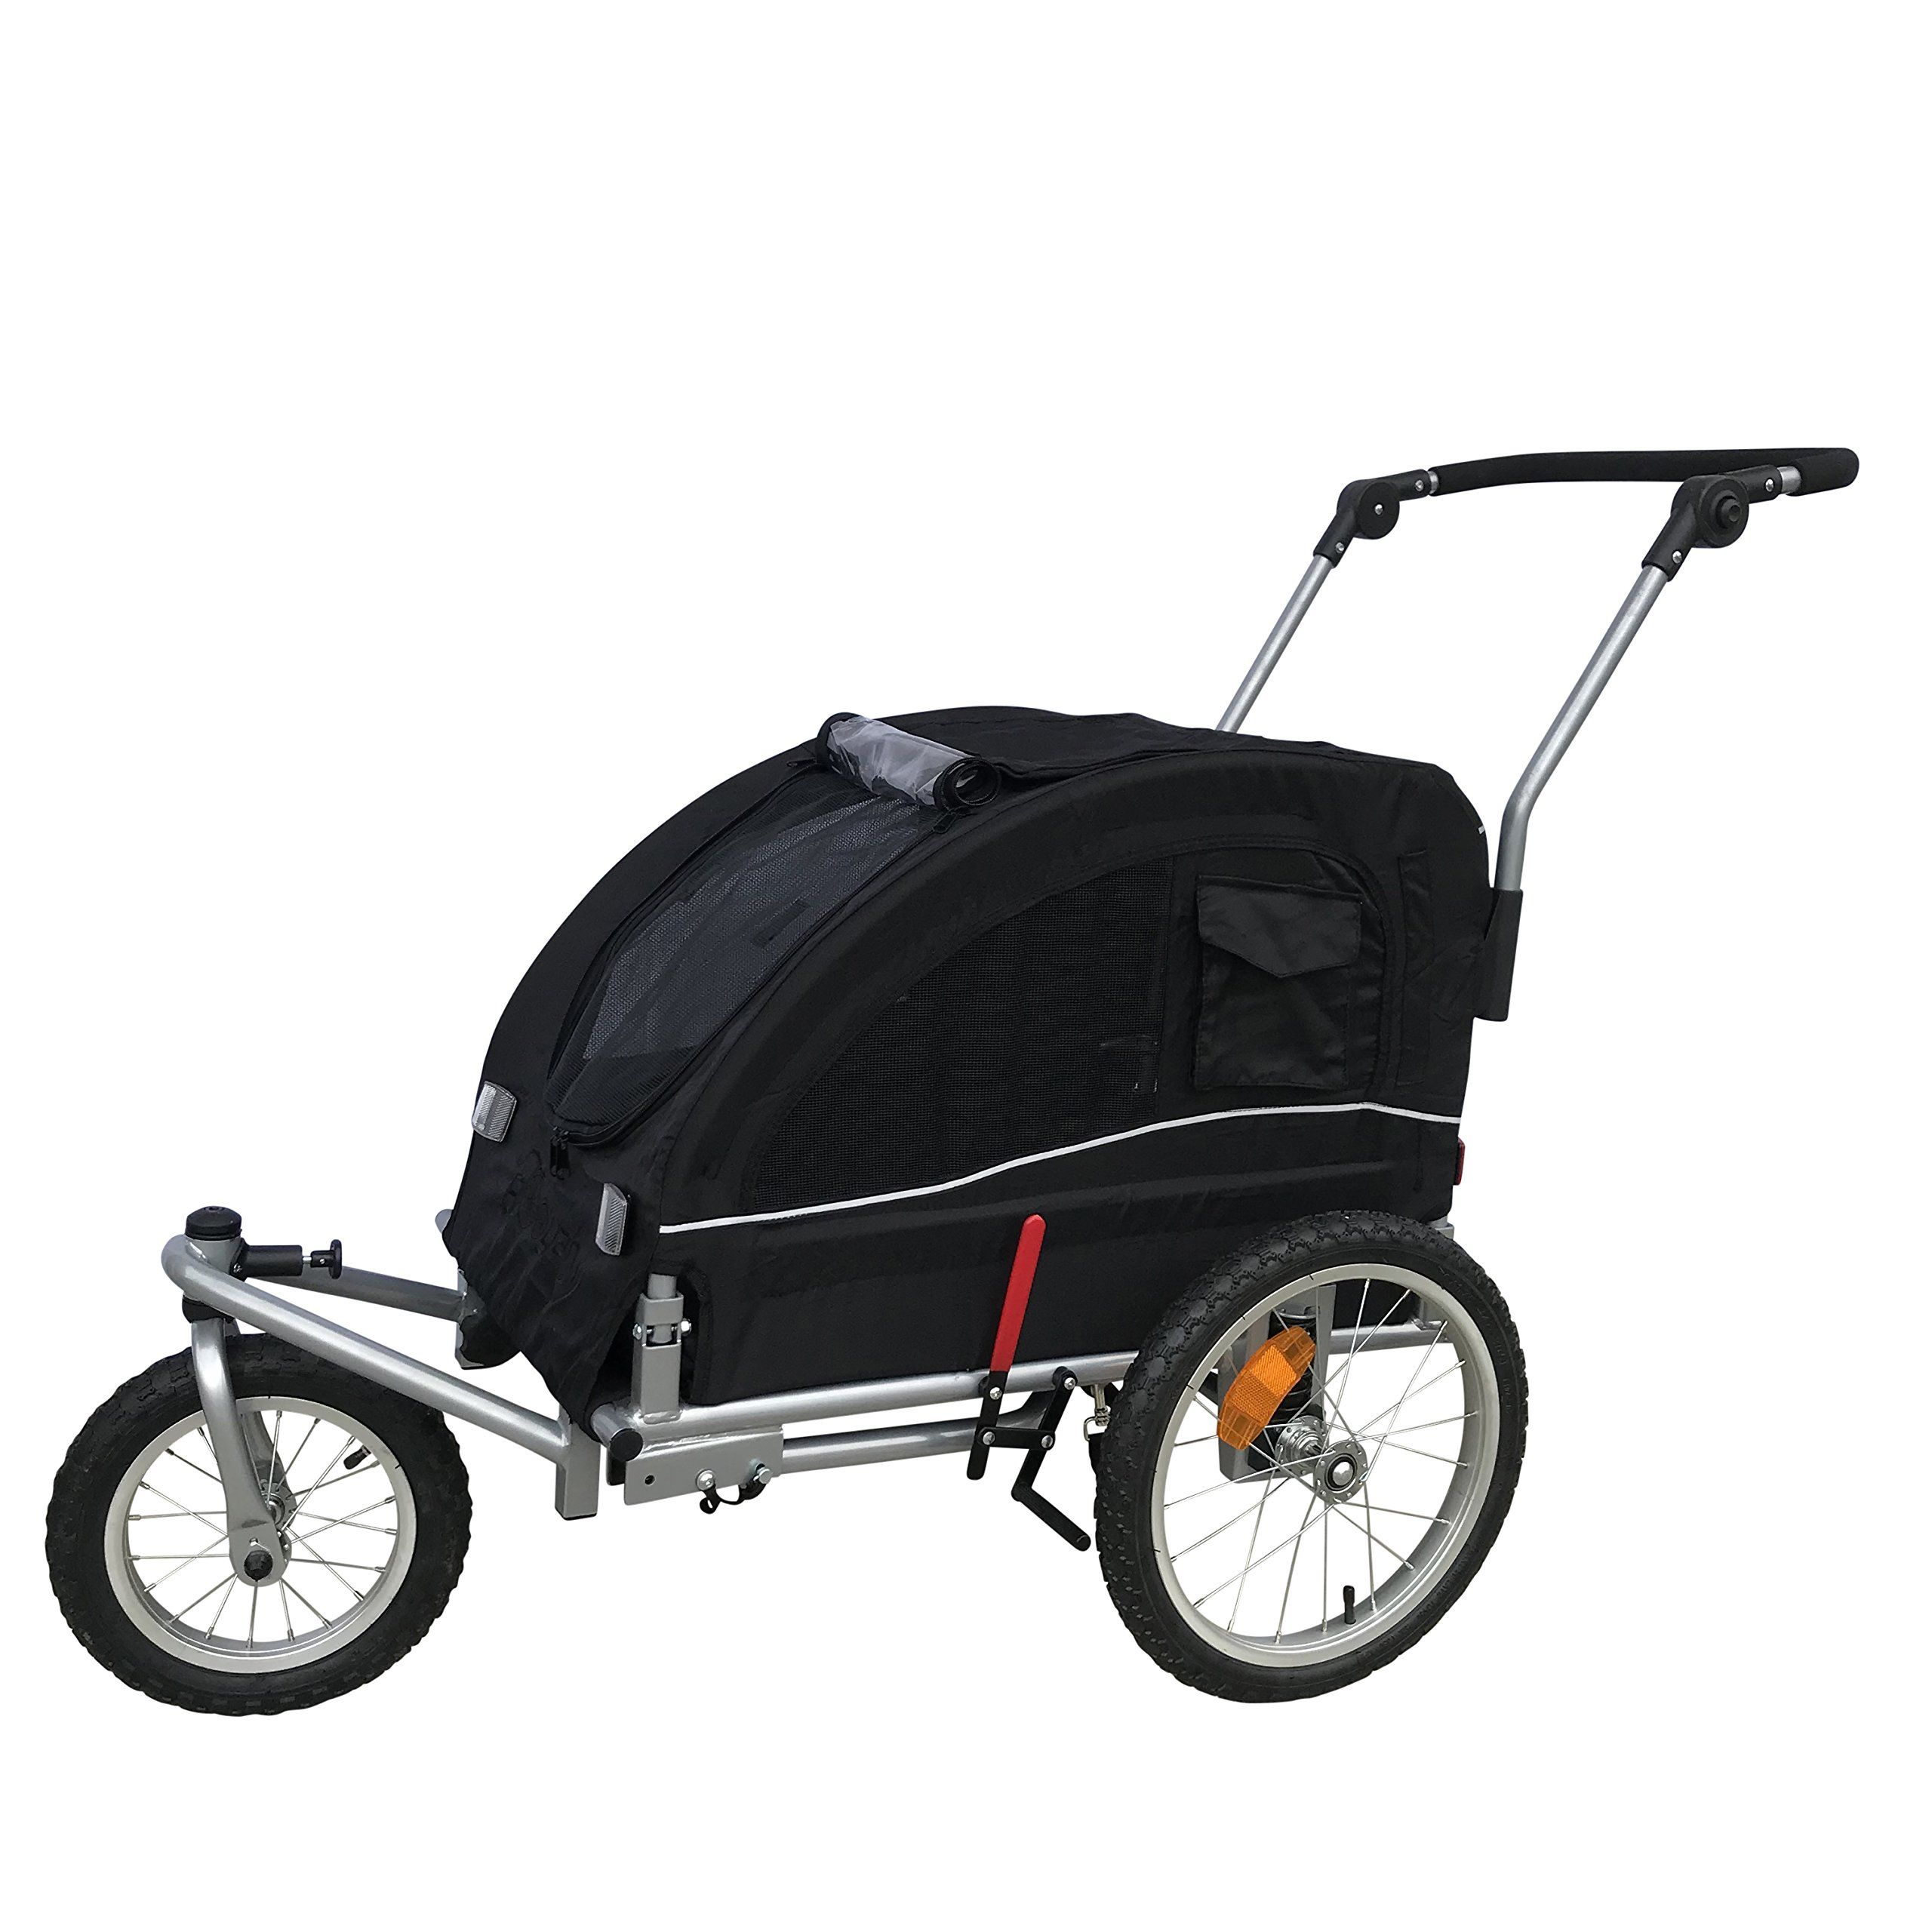 Booyah Medium Dog Stroller andamp; Pet Bike Trailer with